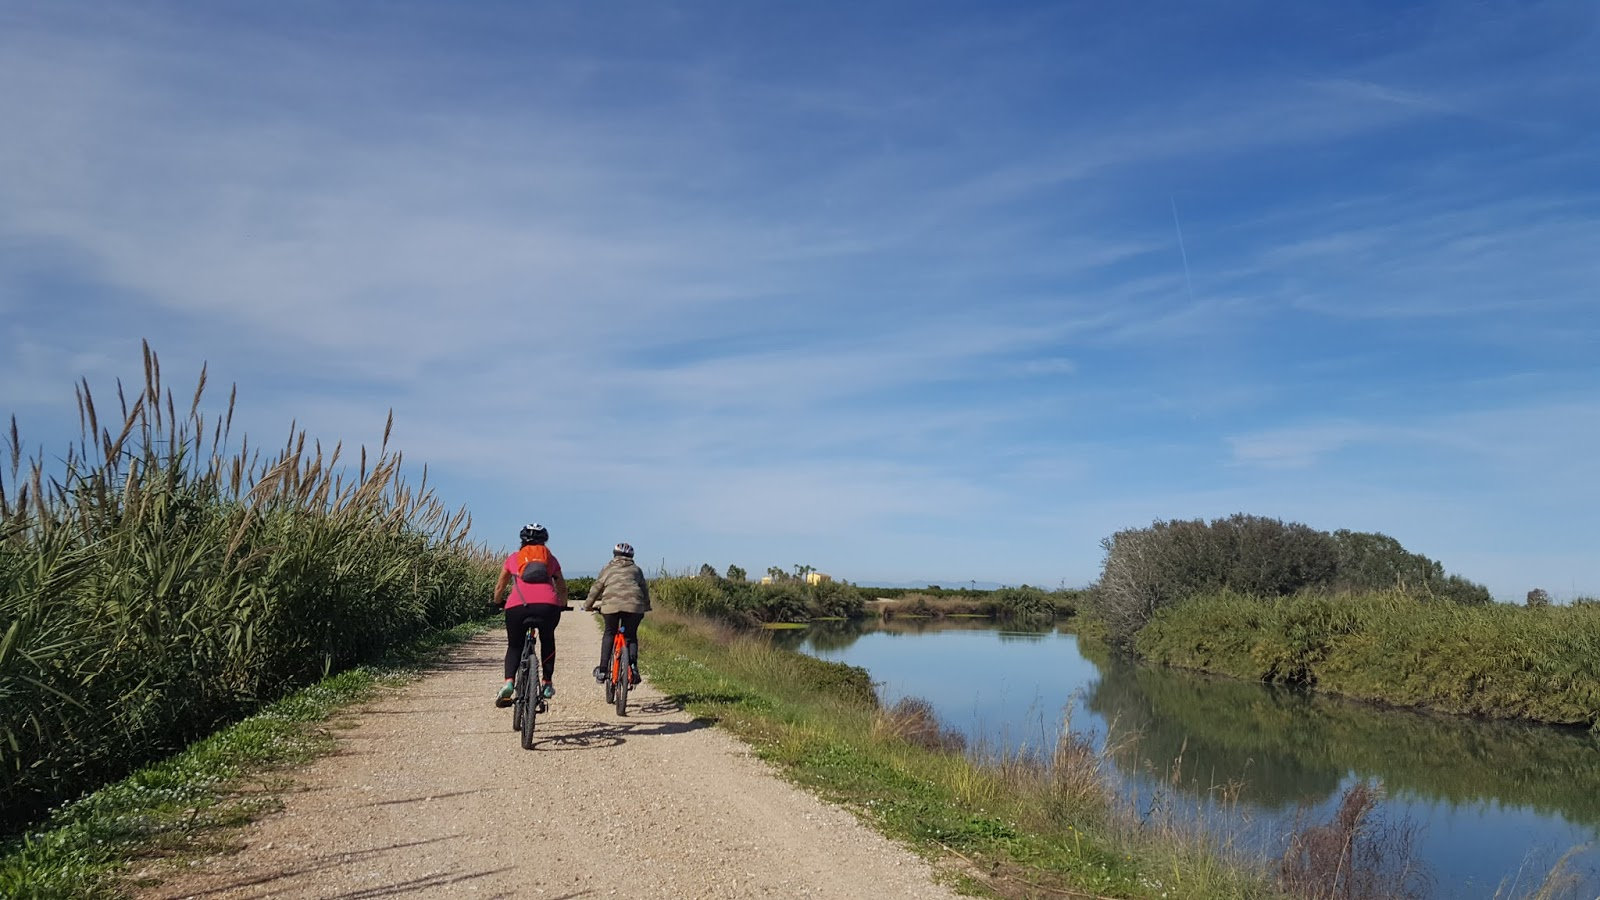 Cycling along the River Júcar in Spain